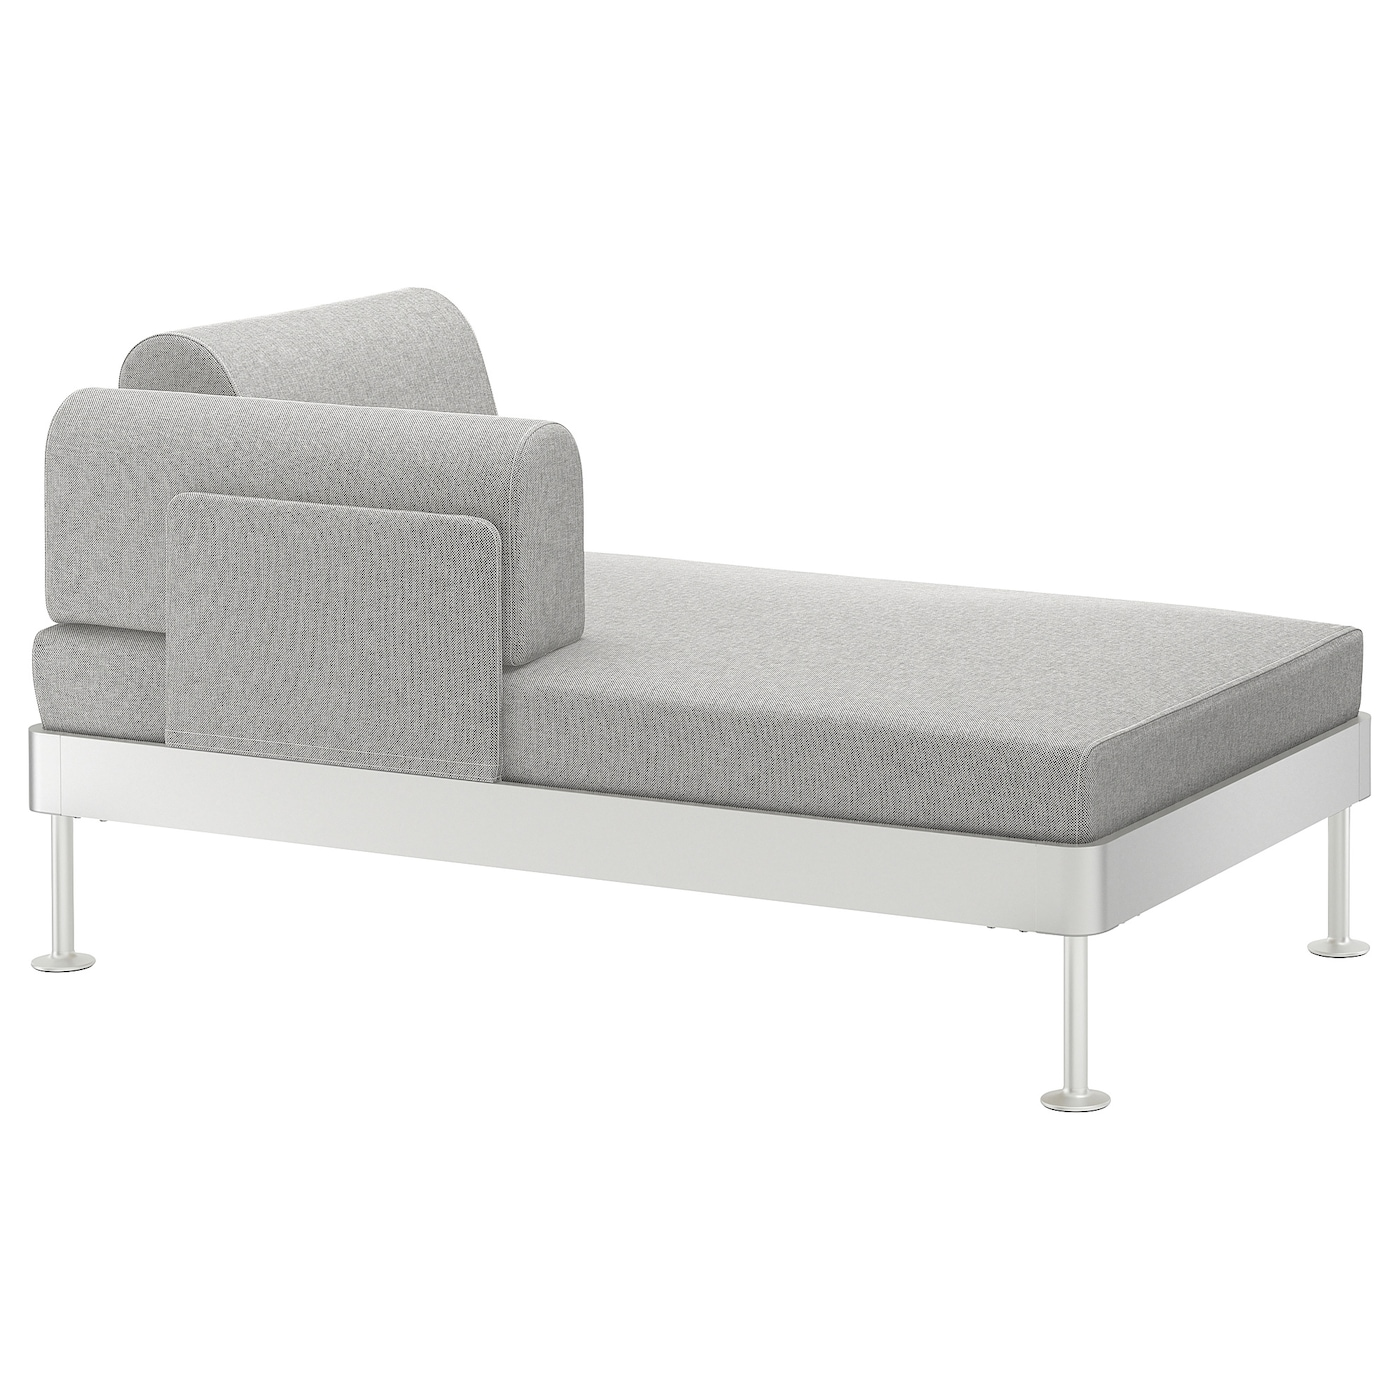 Ikea chaise sofa rp 3 seat sofa with chaise longue - Sofa rinconera con chaise longue ...